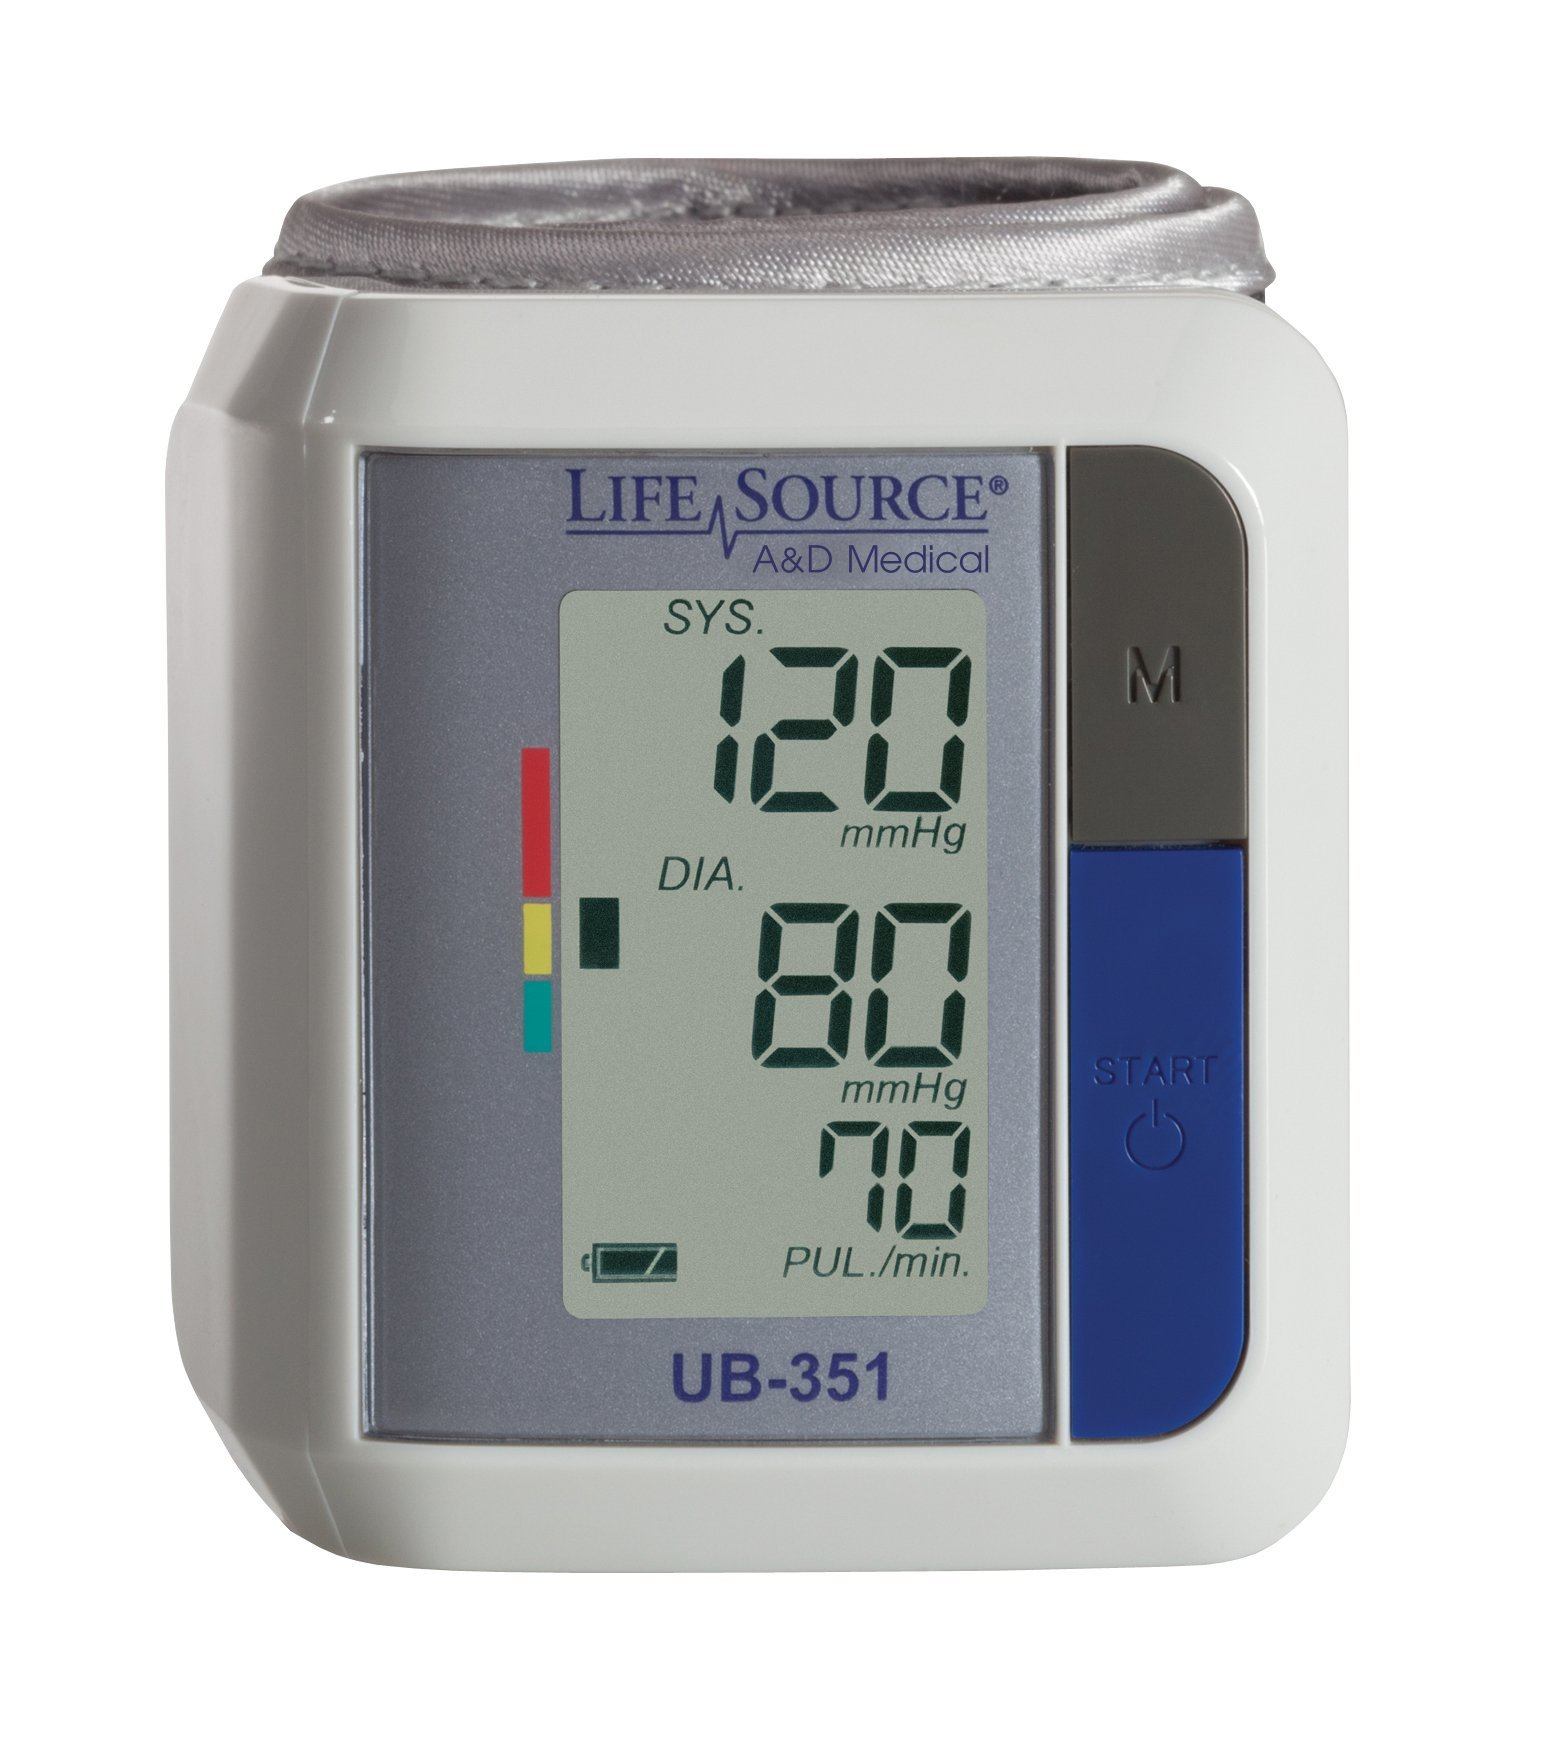 LifeSource Automatic Wrist Blood Pressure Monitor (UB-351B)